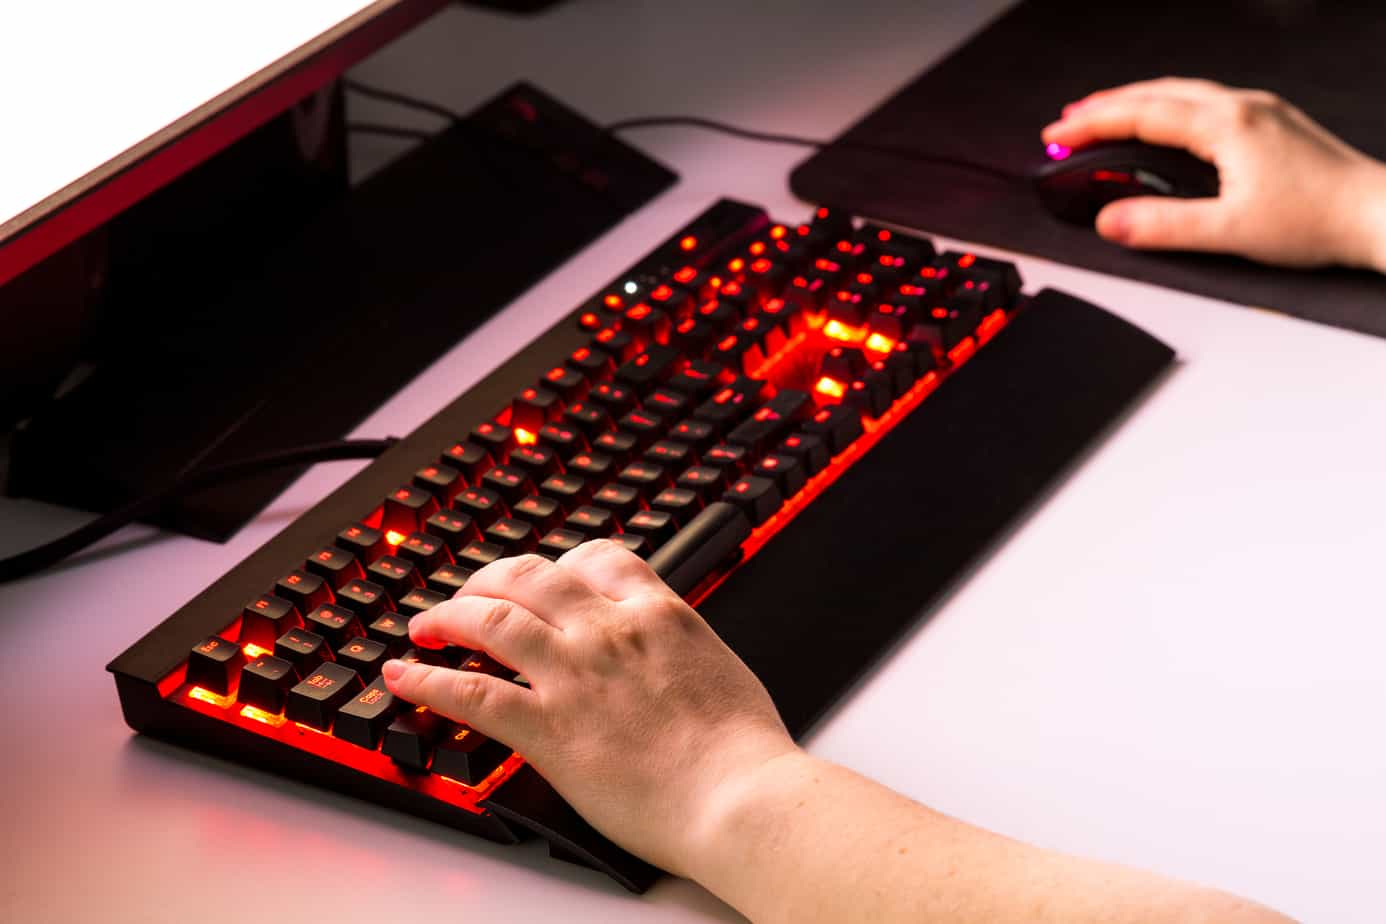 fingers placement on keyboards